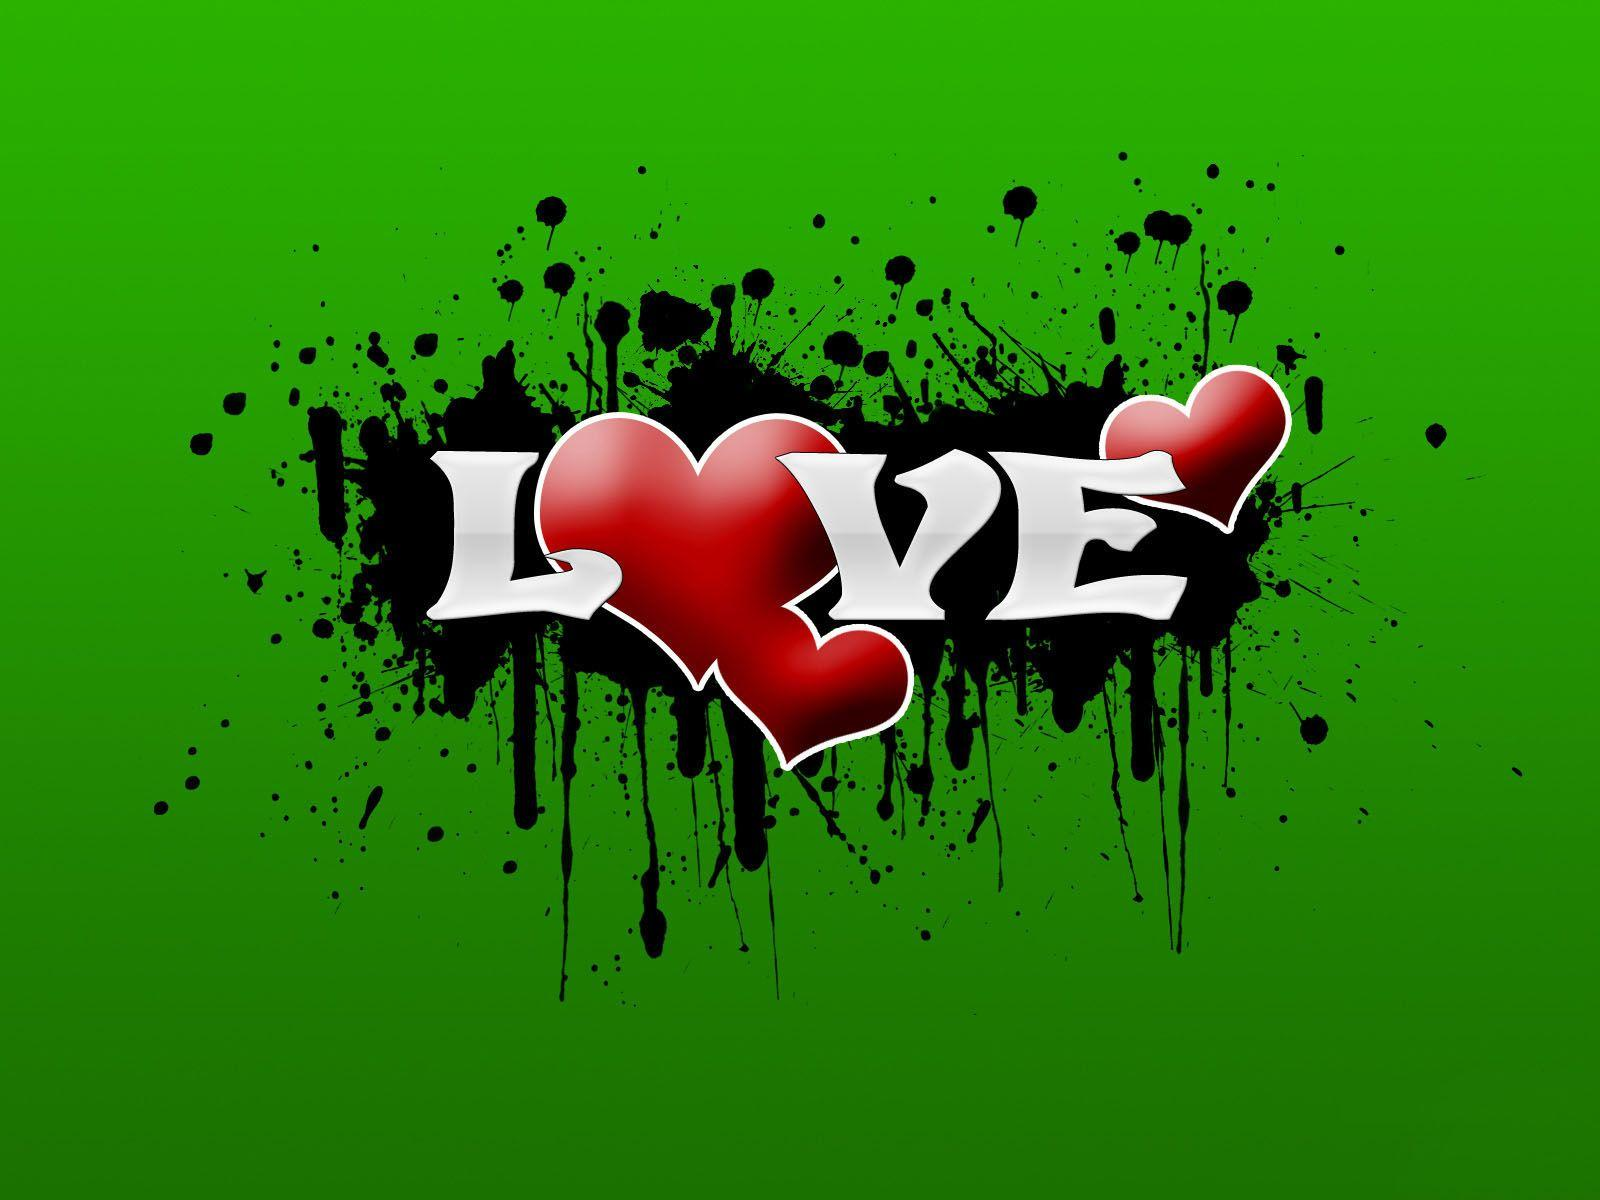 Wallpaper I Love You 3d : Love Wallpapers 3D - Wallpaper cave